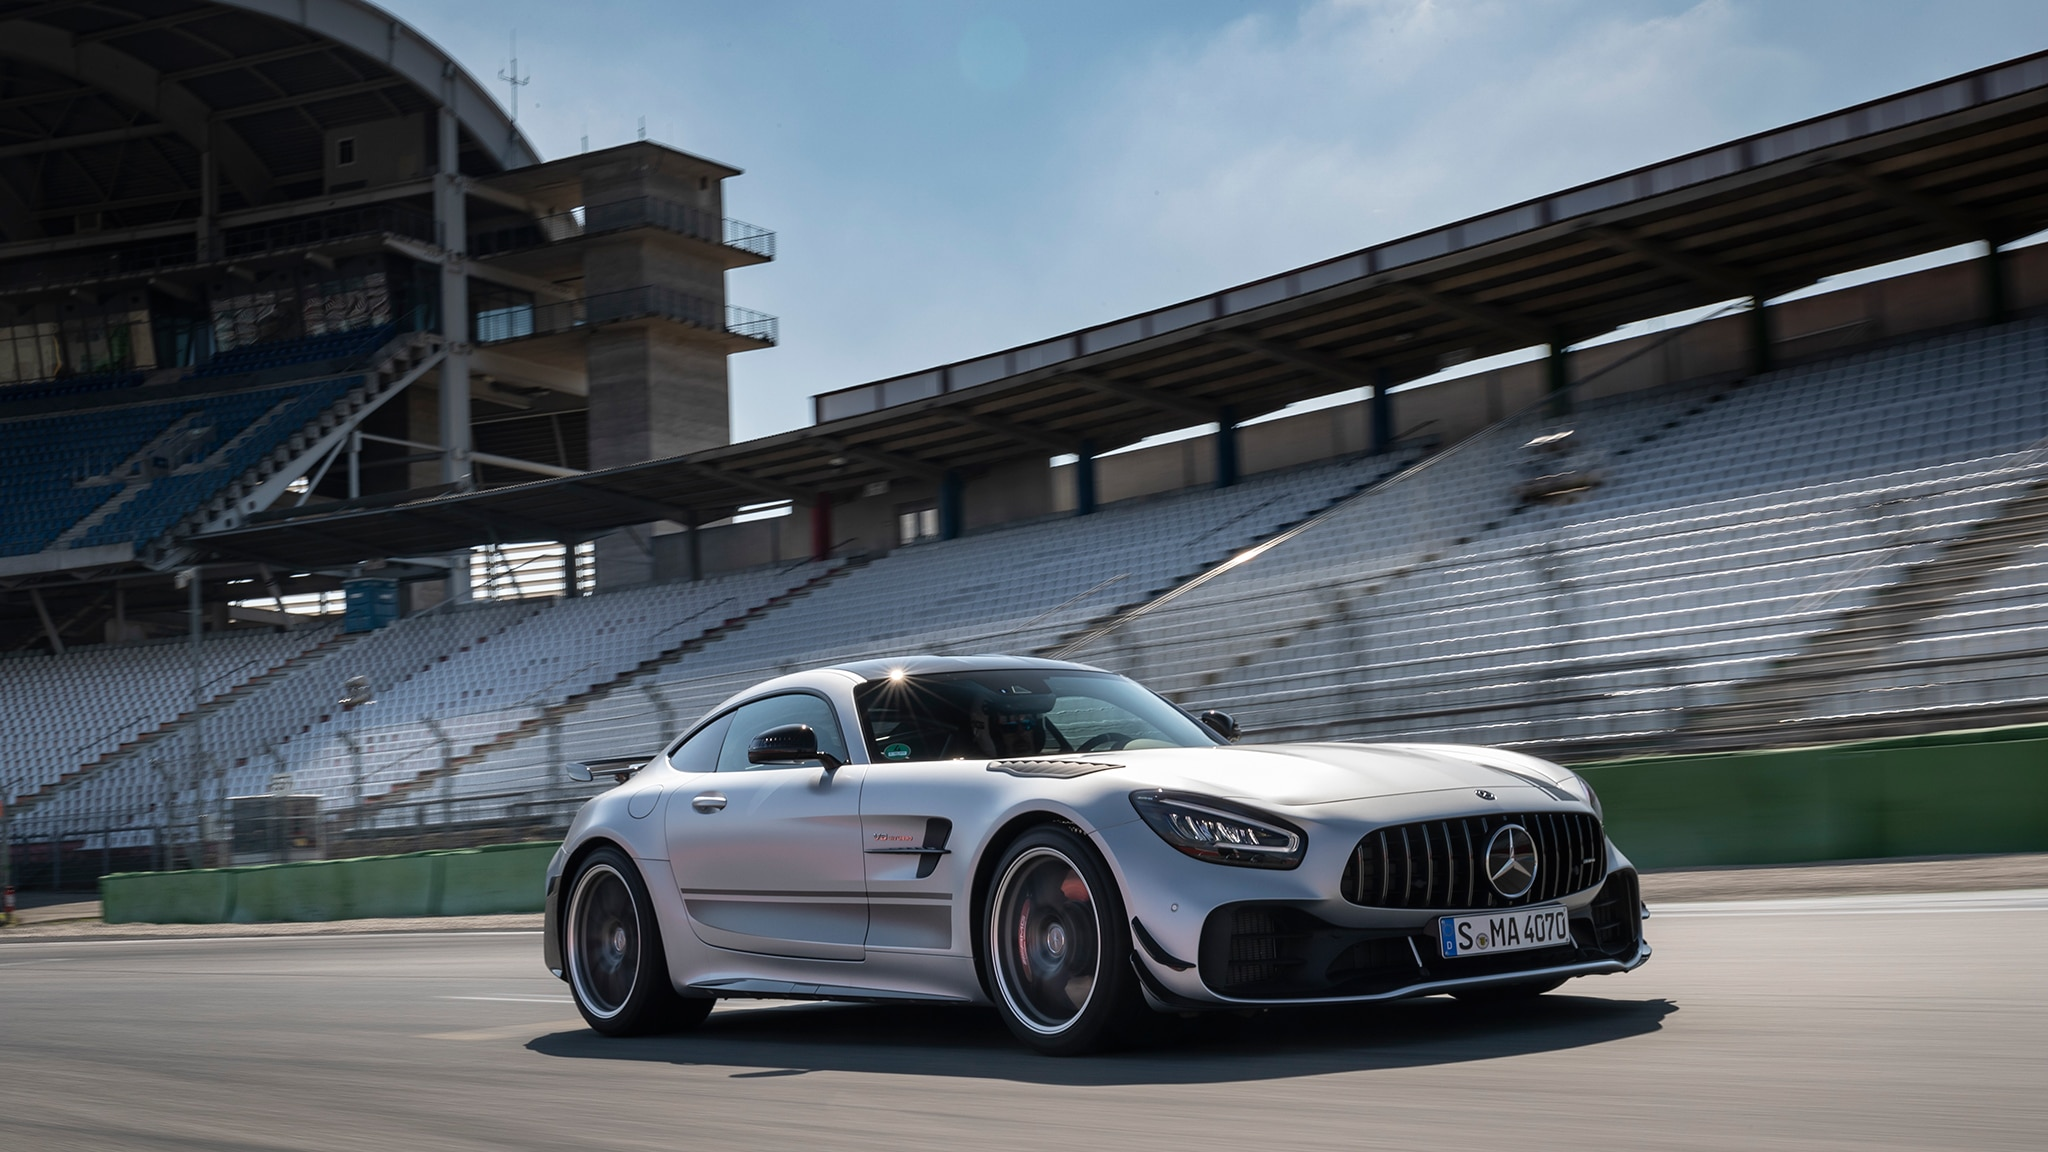 2020 Mercedes-AMG GT R Pro First Drive: Serious Drivers Only | Automobile Magazine